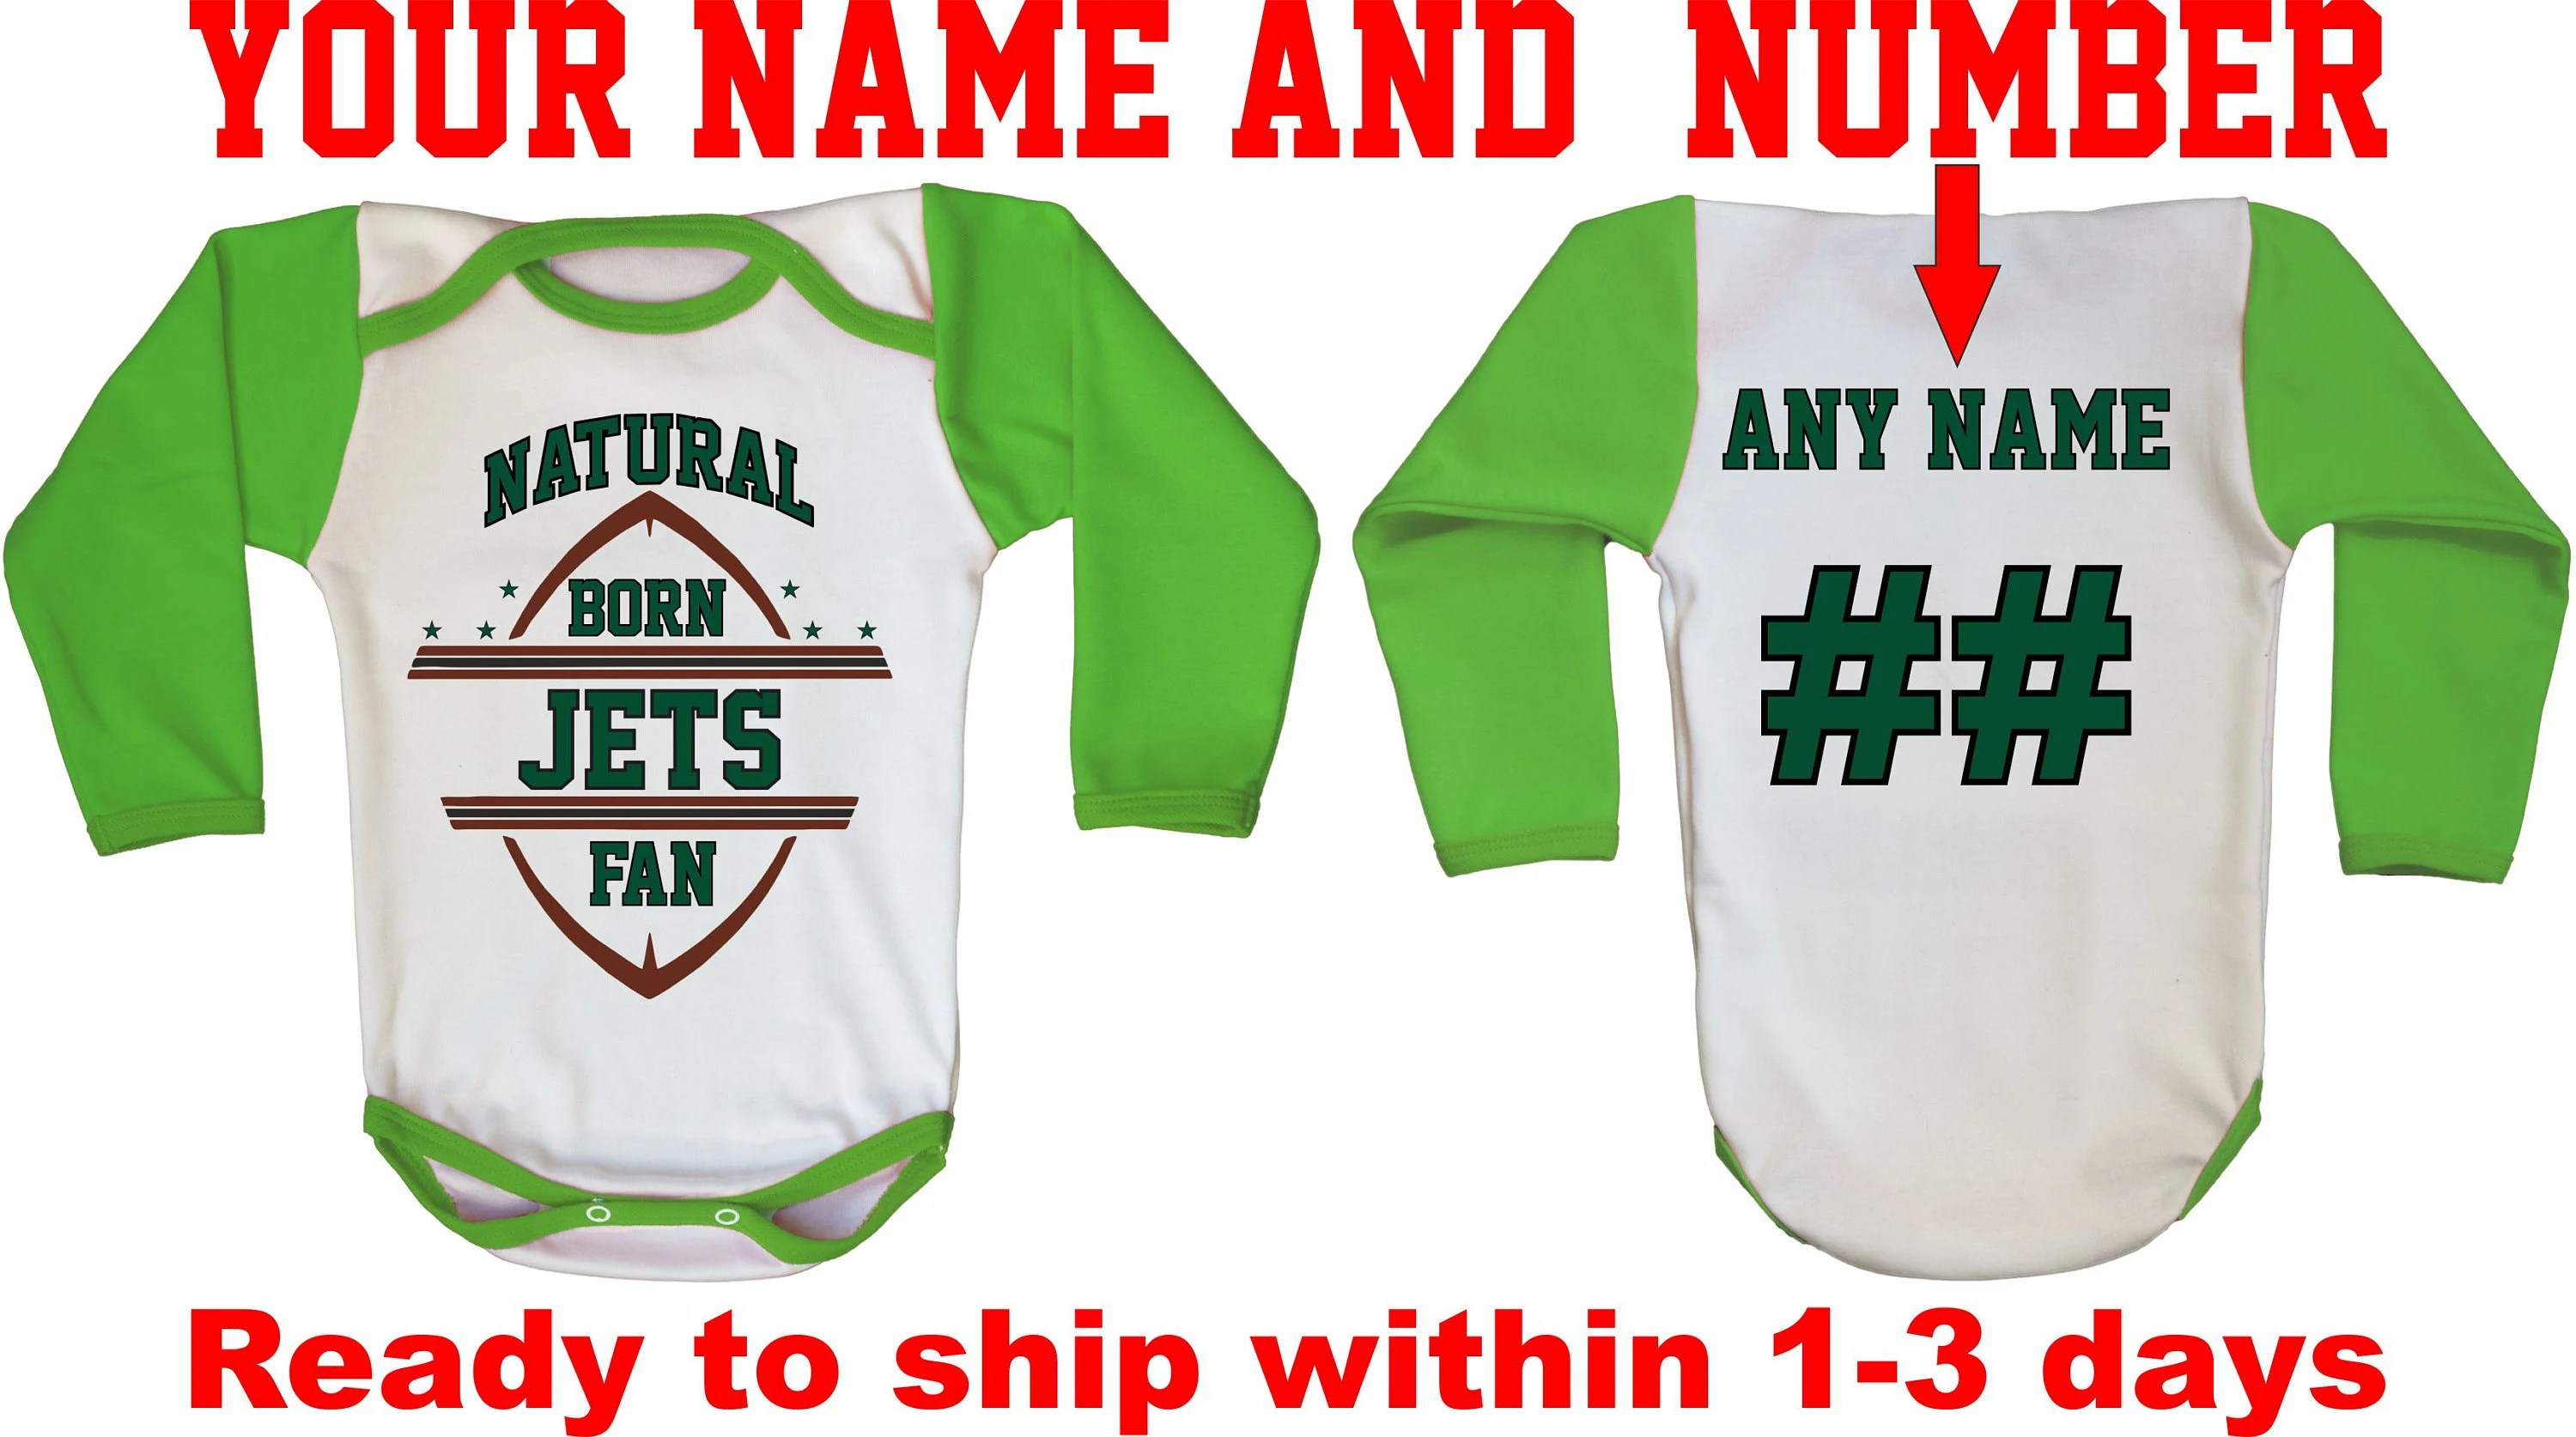 b21d493774c Jets Baby Romper For Newborn Fan Neutral Baby Football Bodysuit In  Different Color Football Shirt For Newborn Jets Fan Custom Baby Shirt